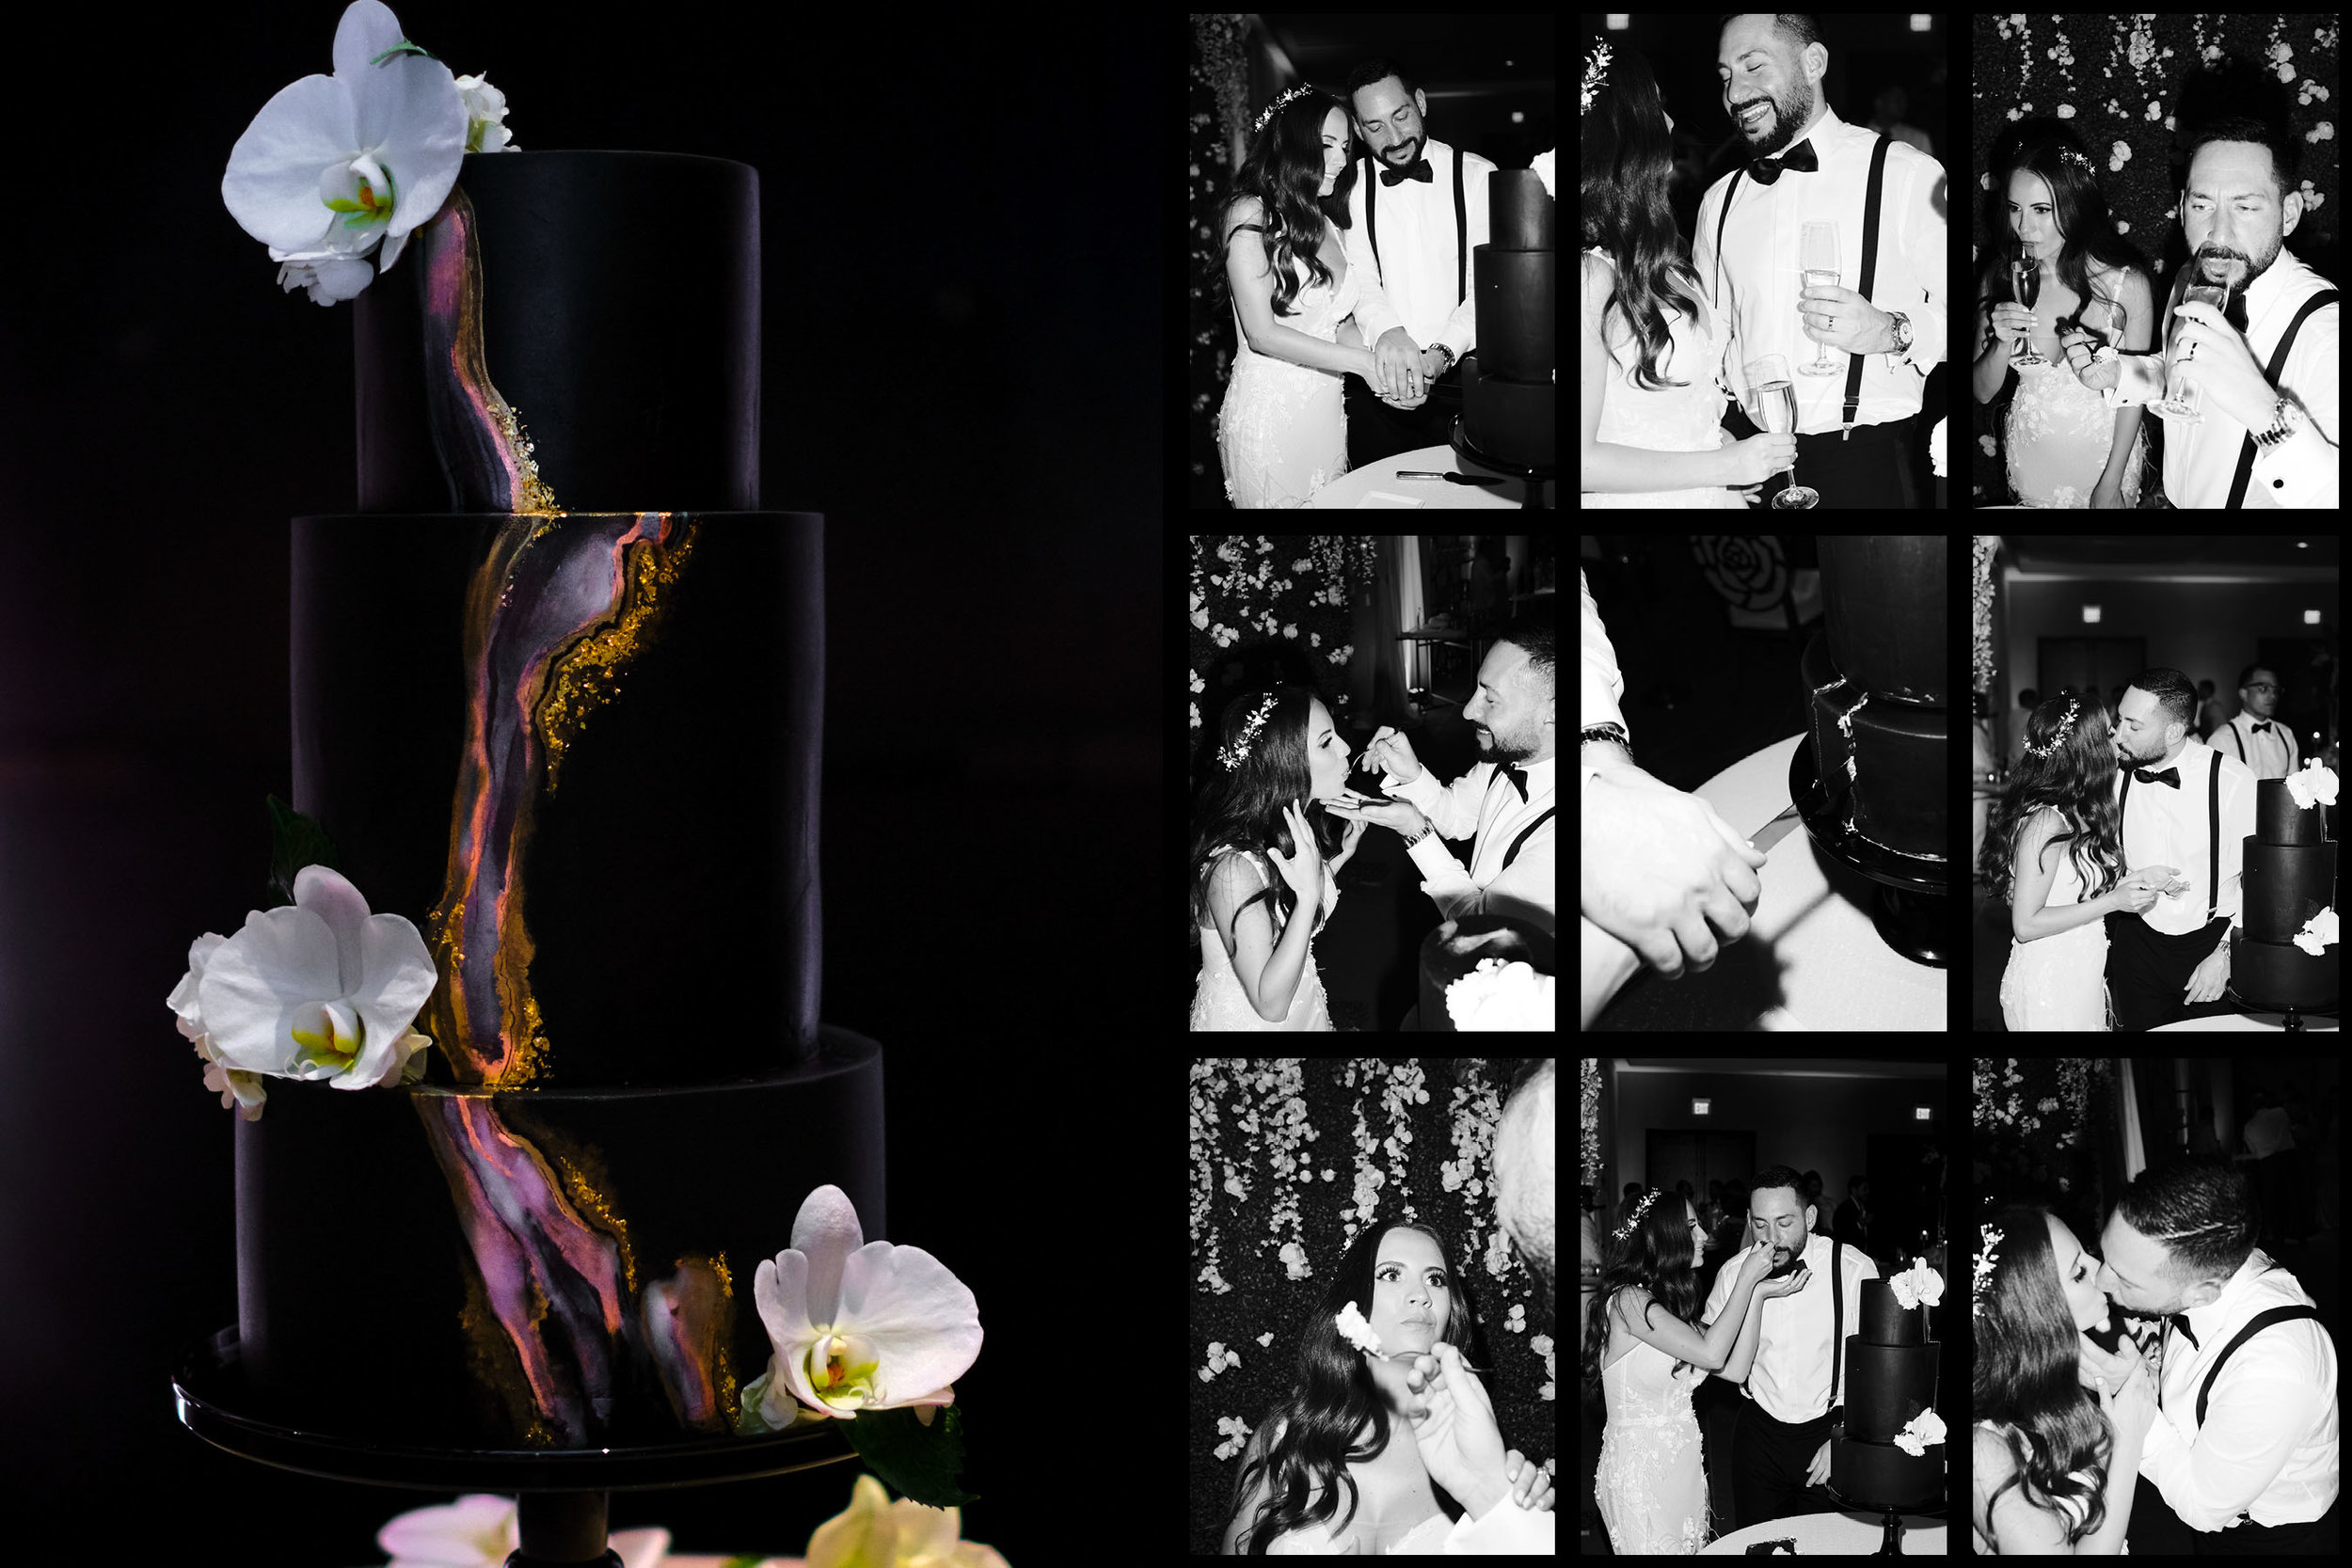 nonesuch_nyc_wedding_photographers_the_edition_miami_wedding_1047.JPG